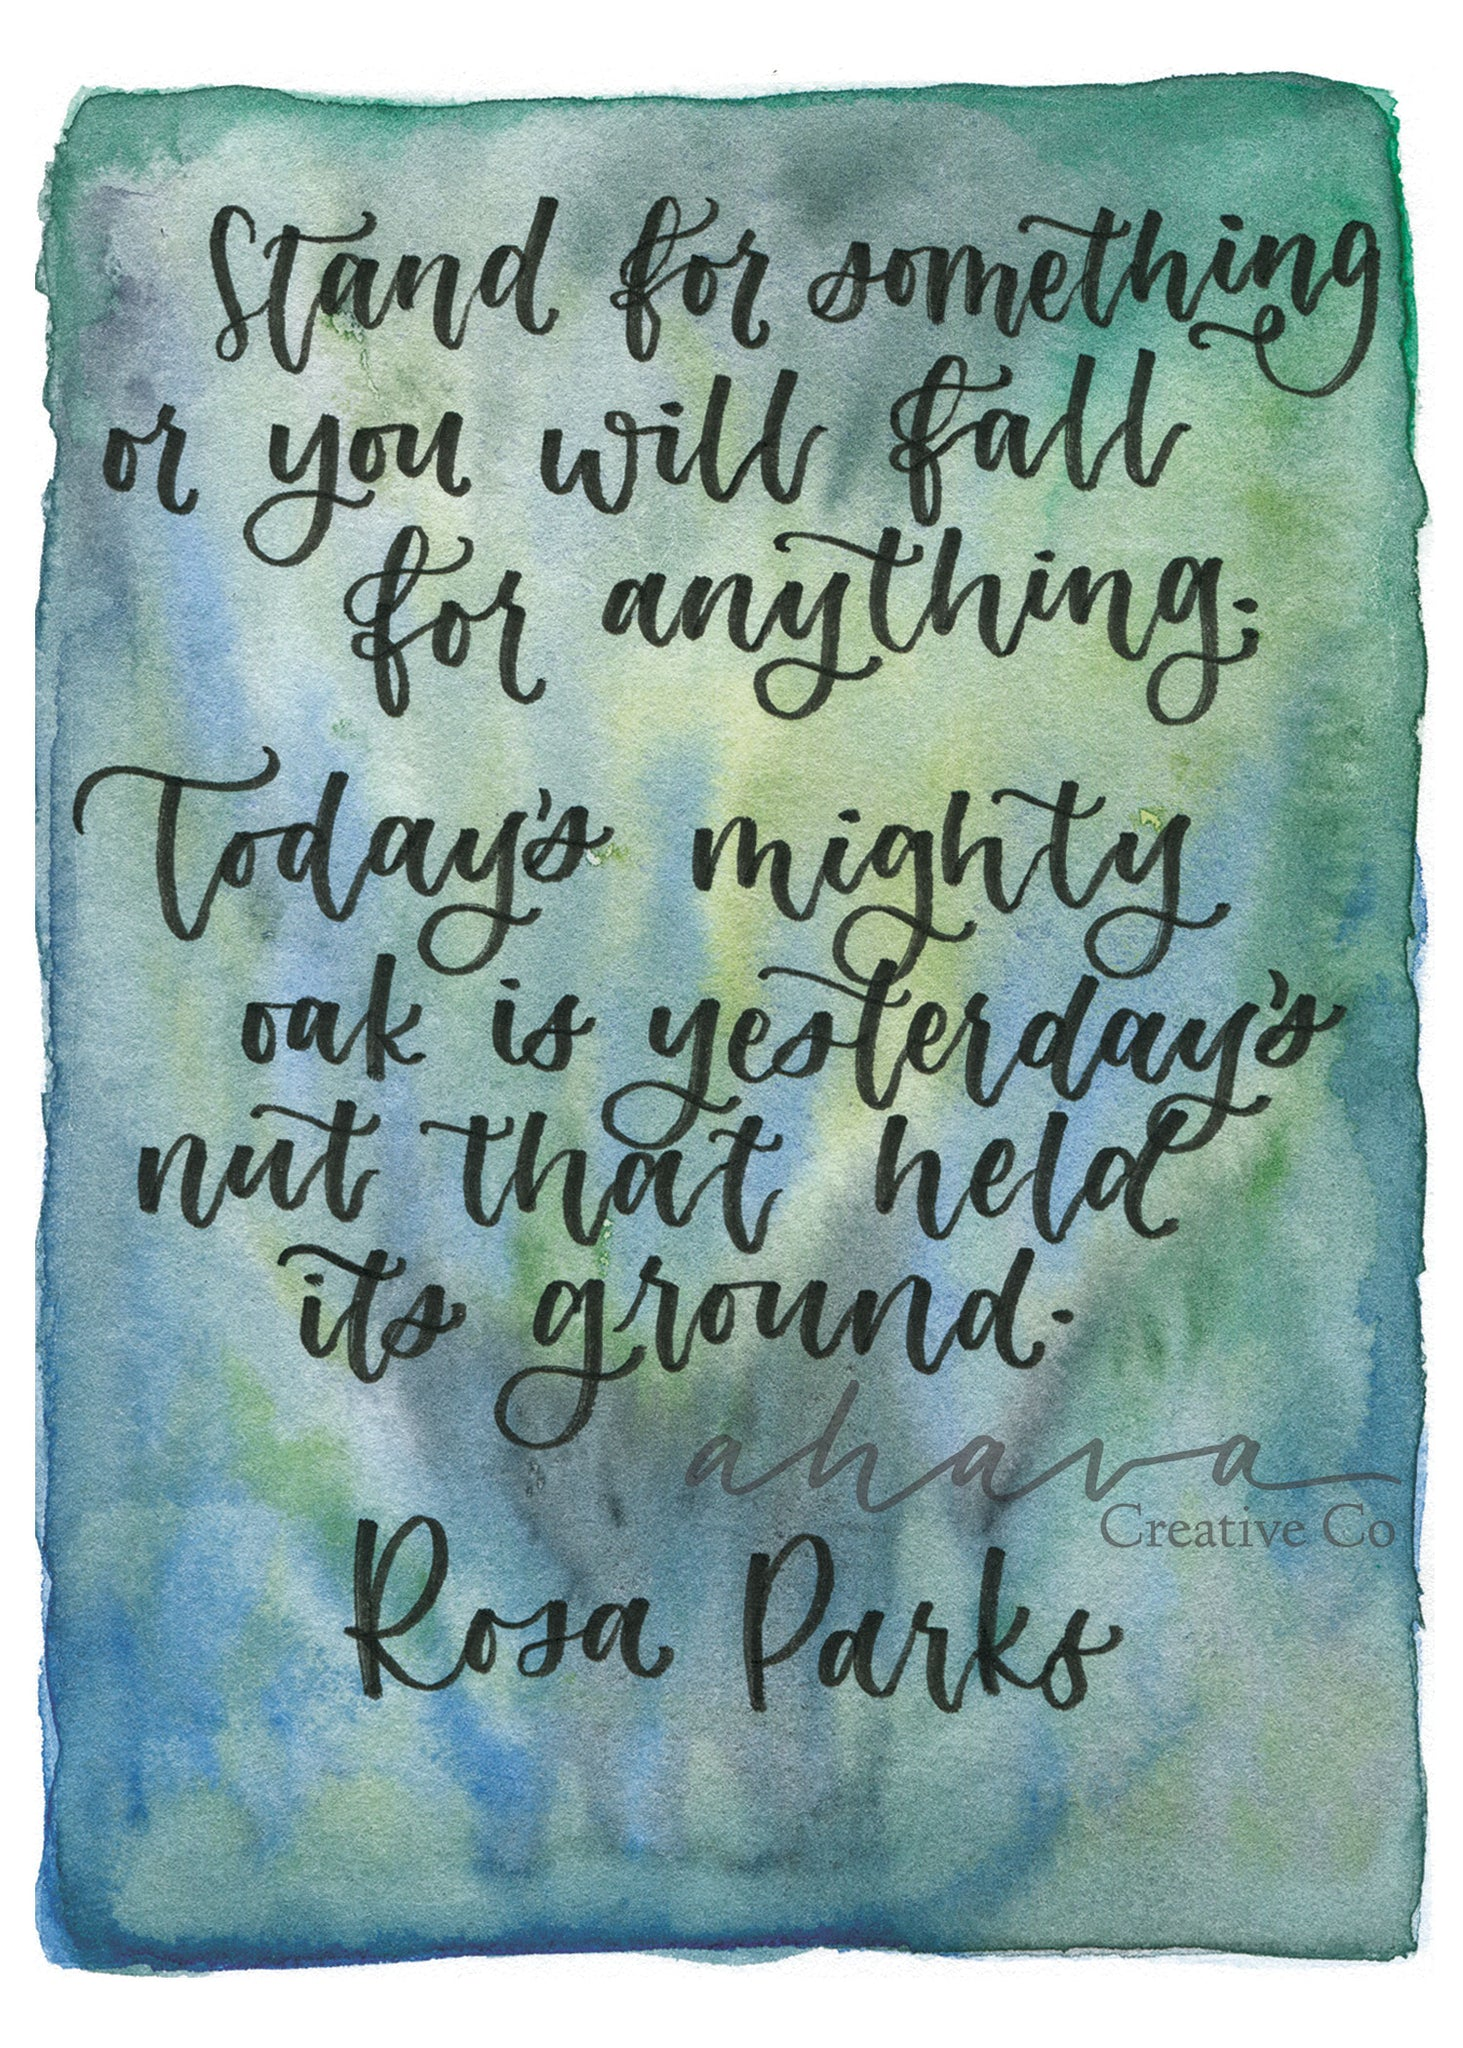 Stand for Something, Rosa Parks Watercolor Art Print